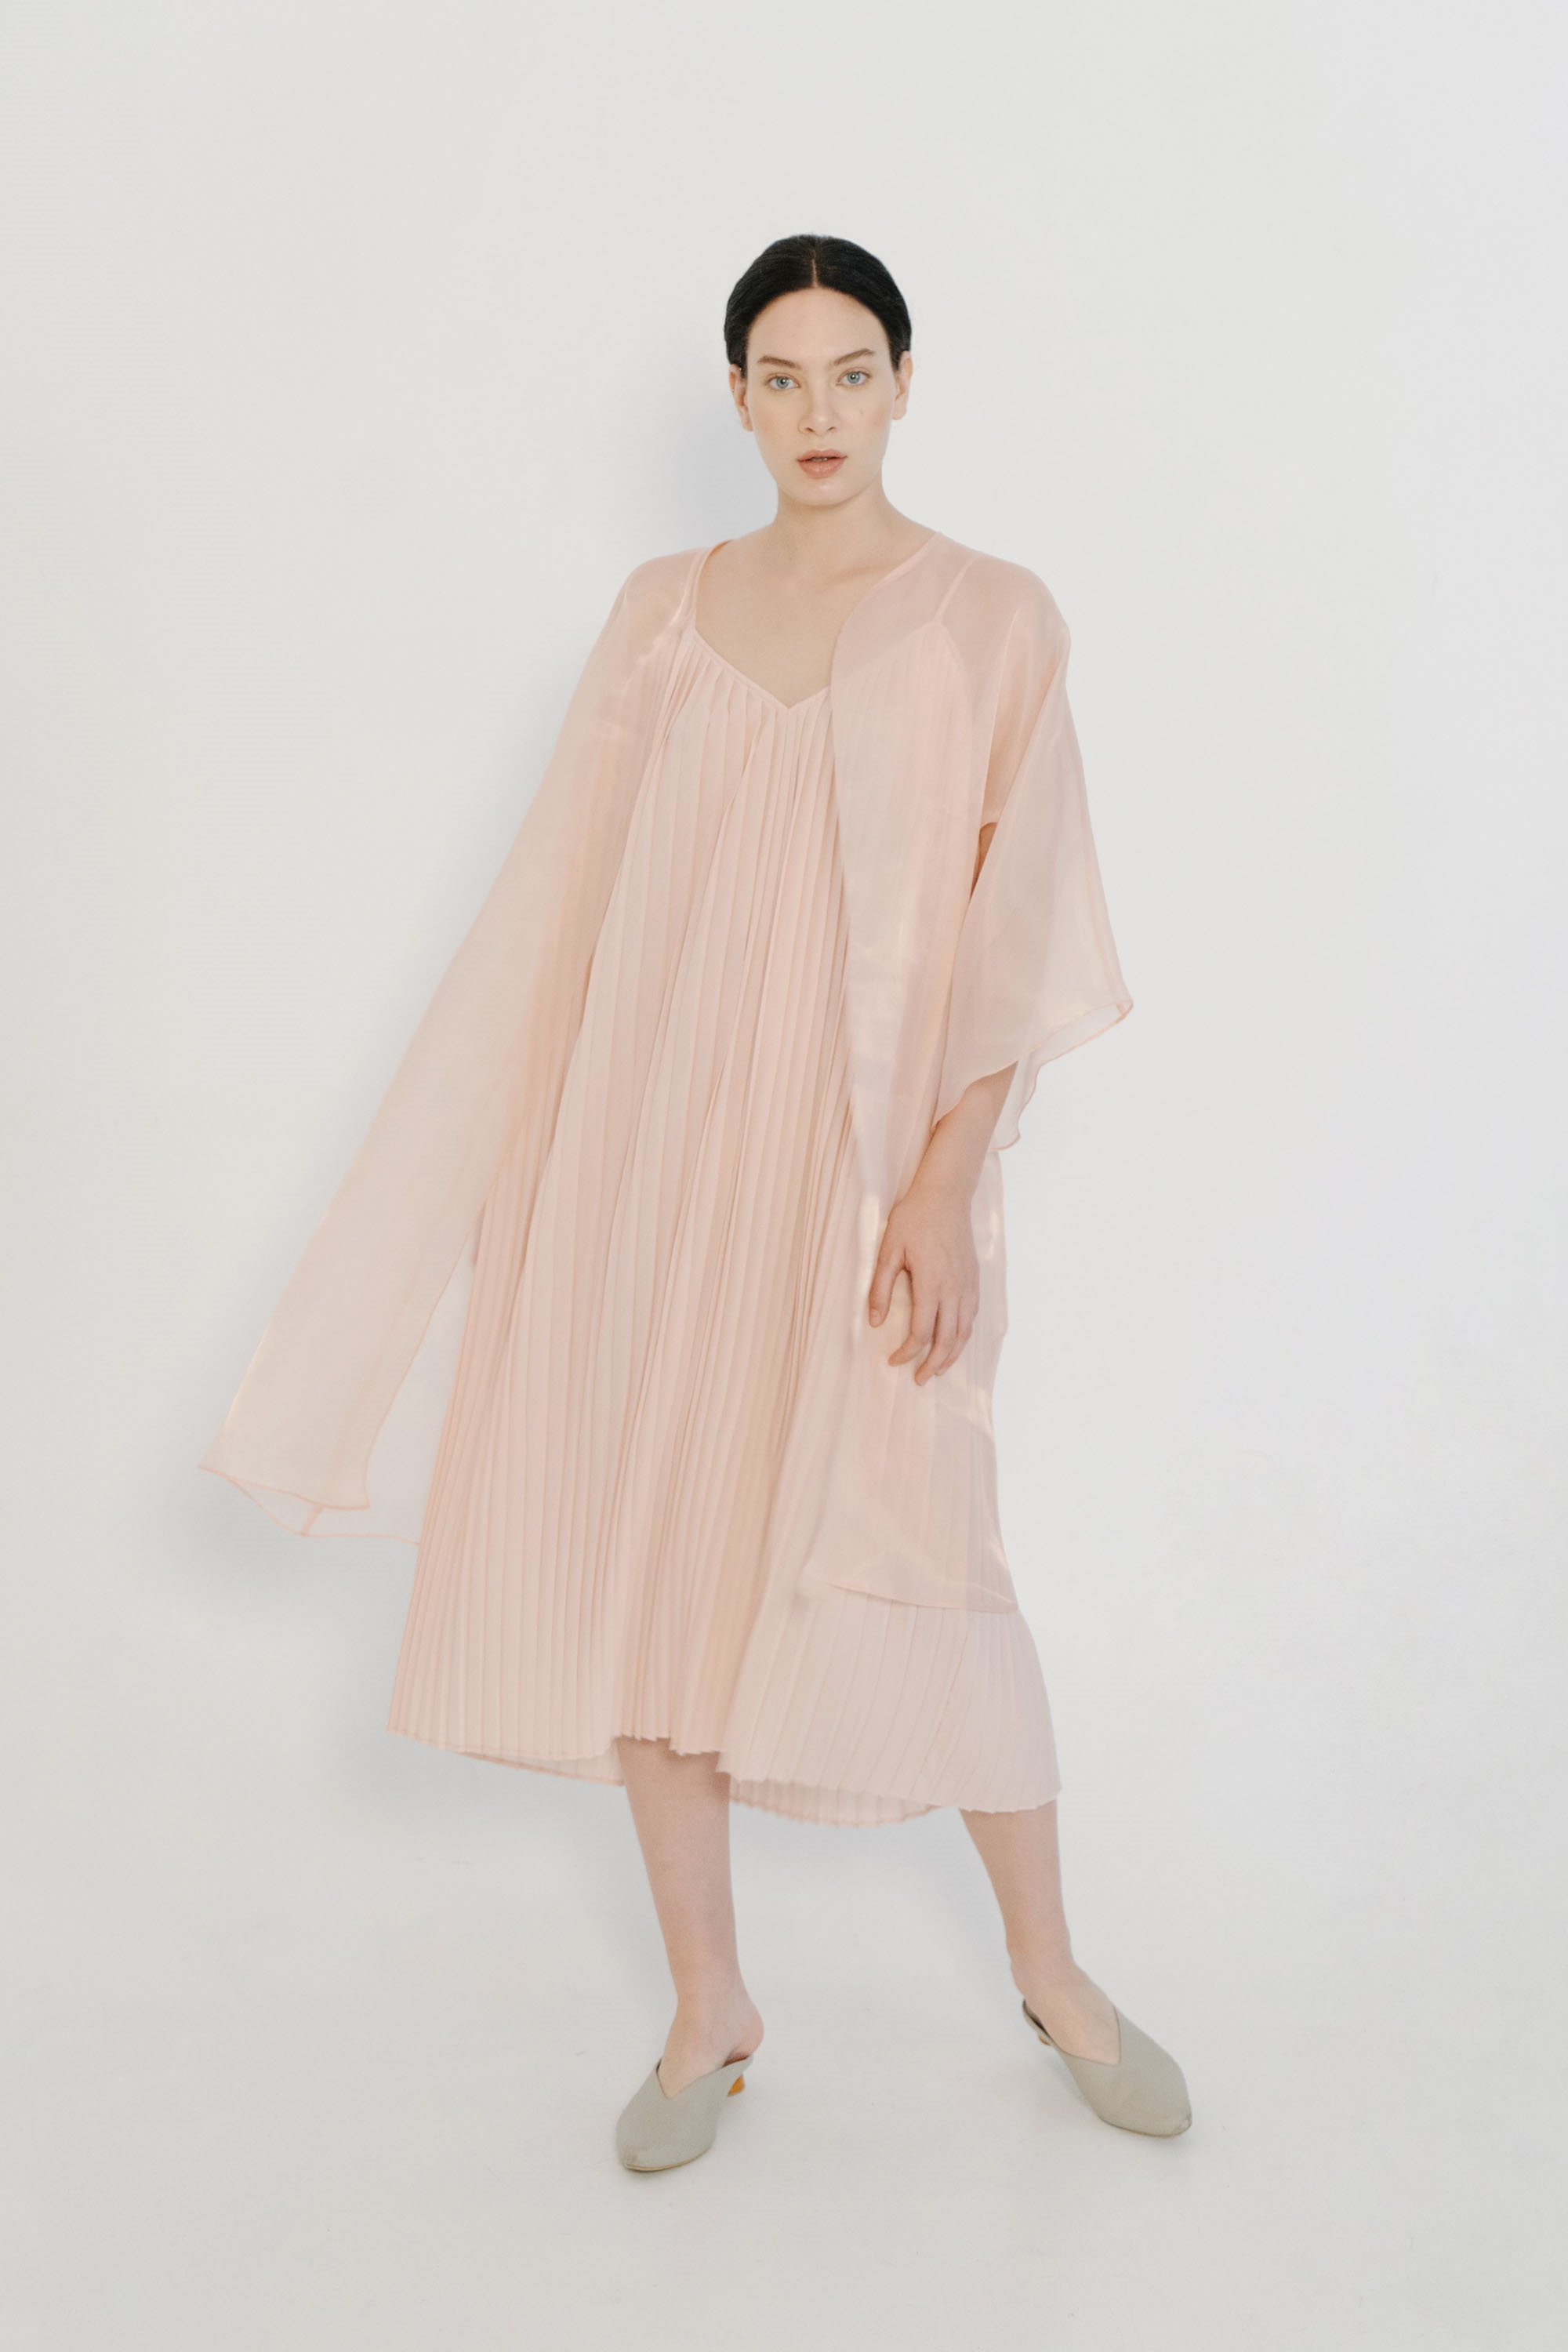 Picture of Kayra Dress in Pale Pink